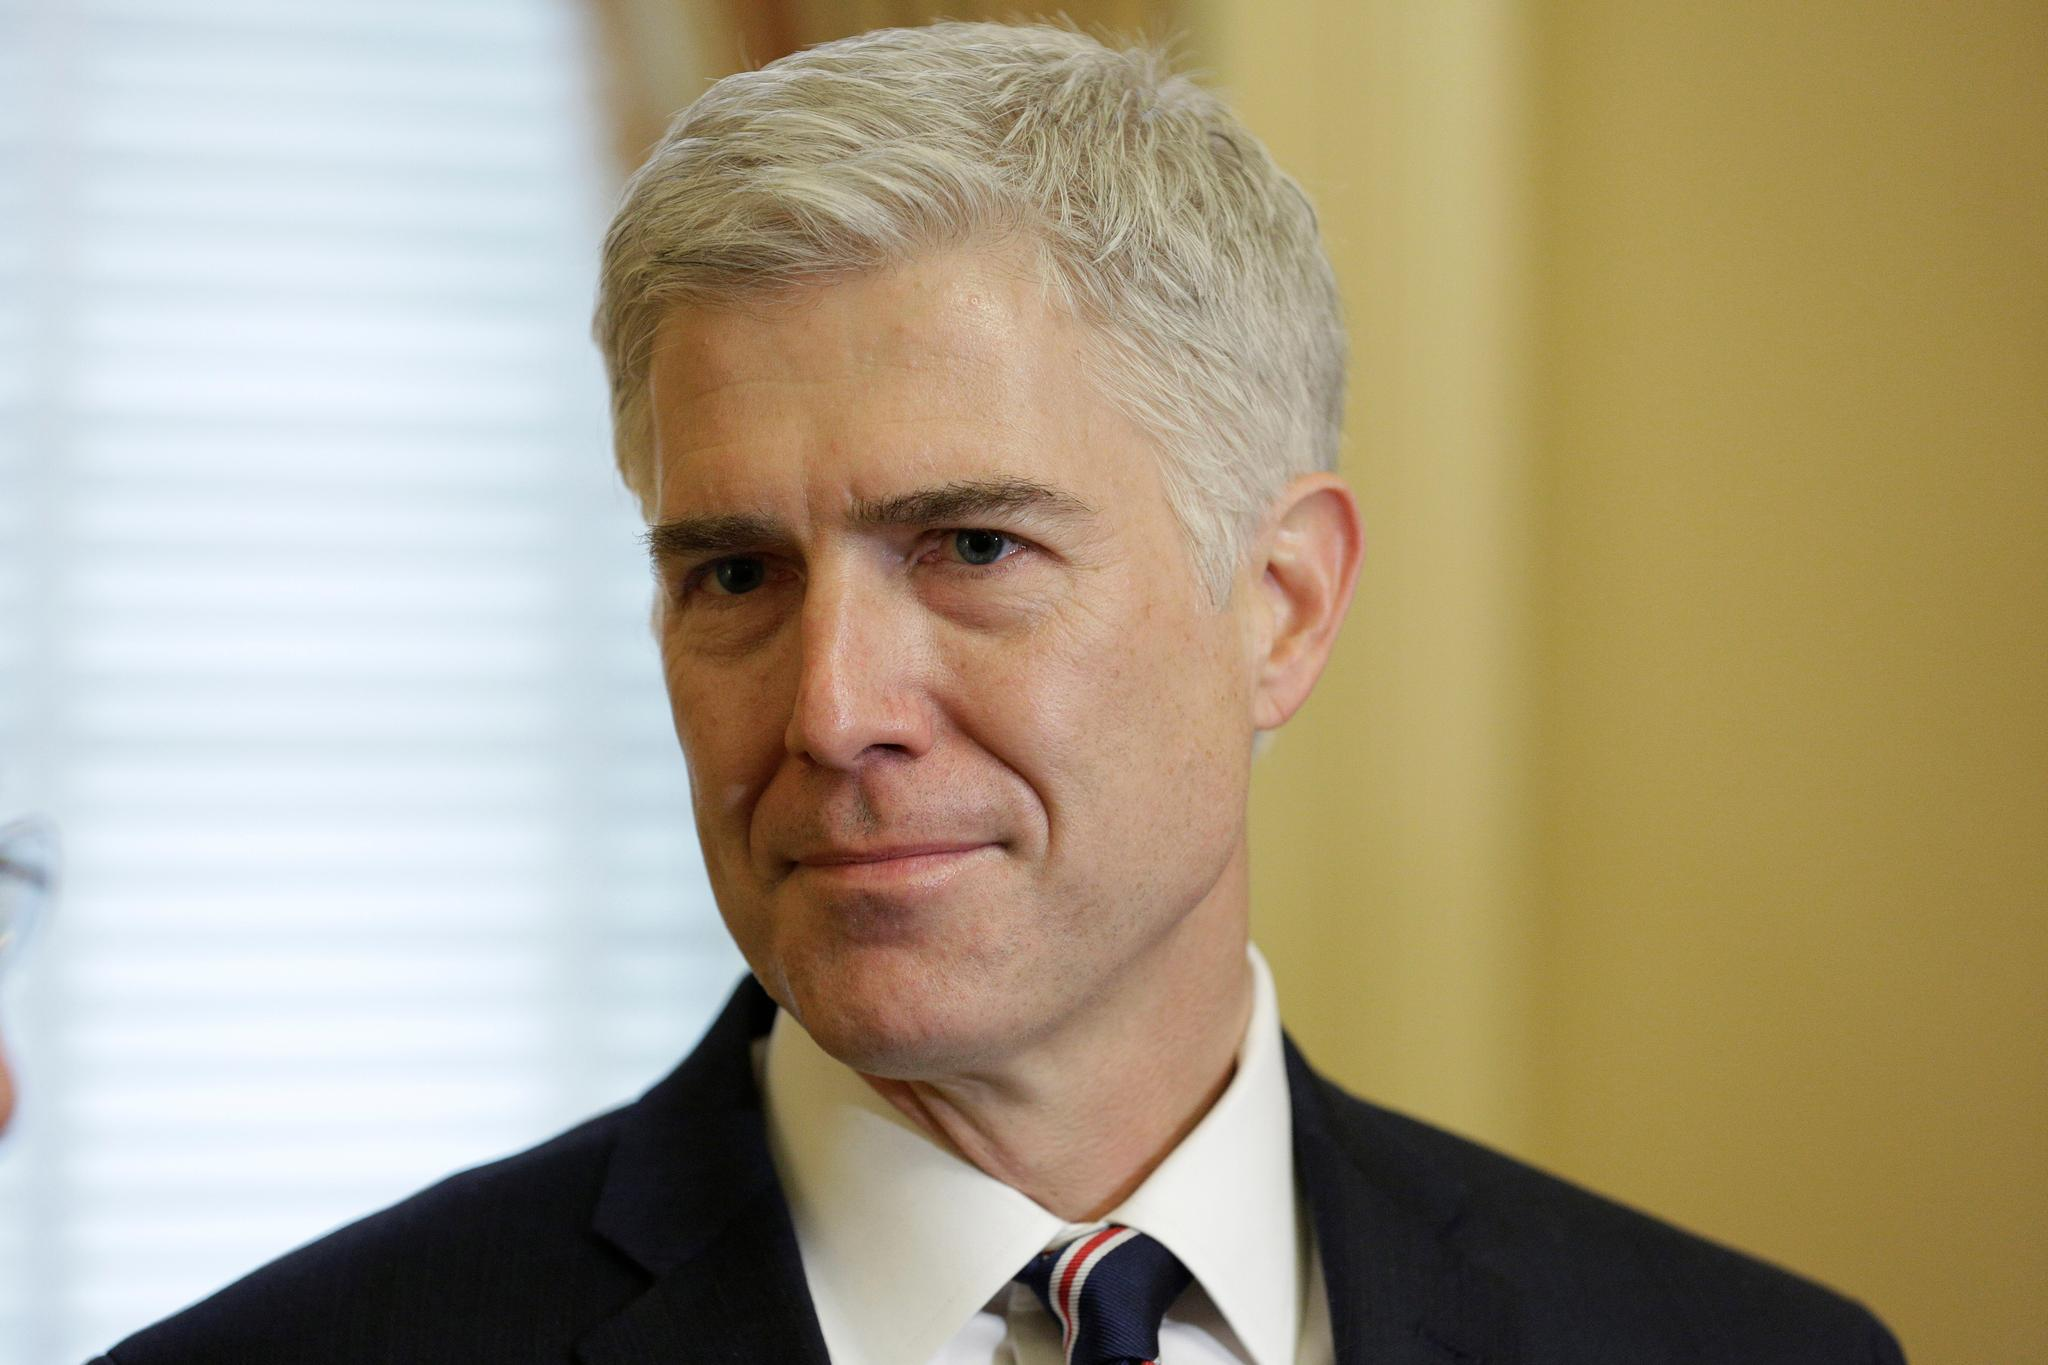 Donald Trump announced his nomination of Neil Gorsuch to the U.S. Supreme Court on January 31.